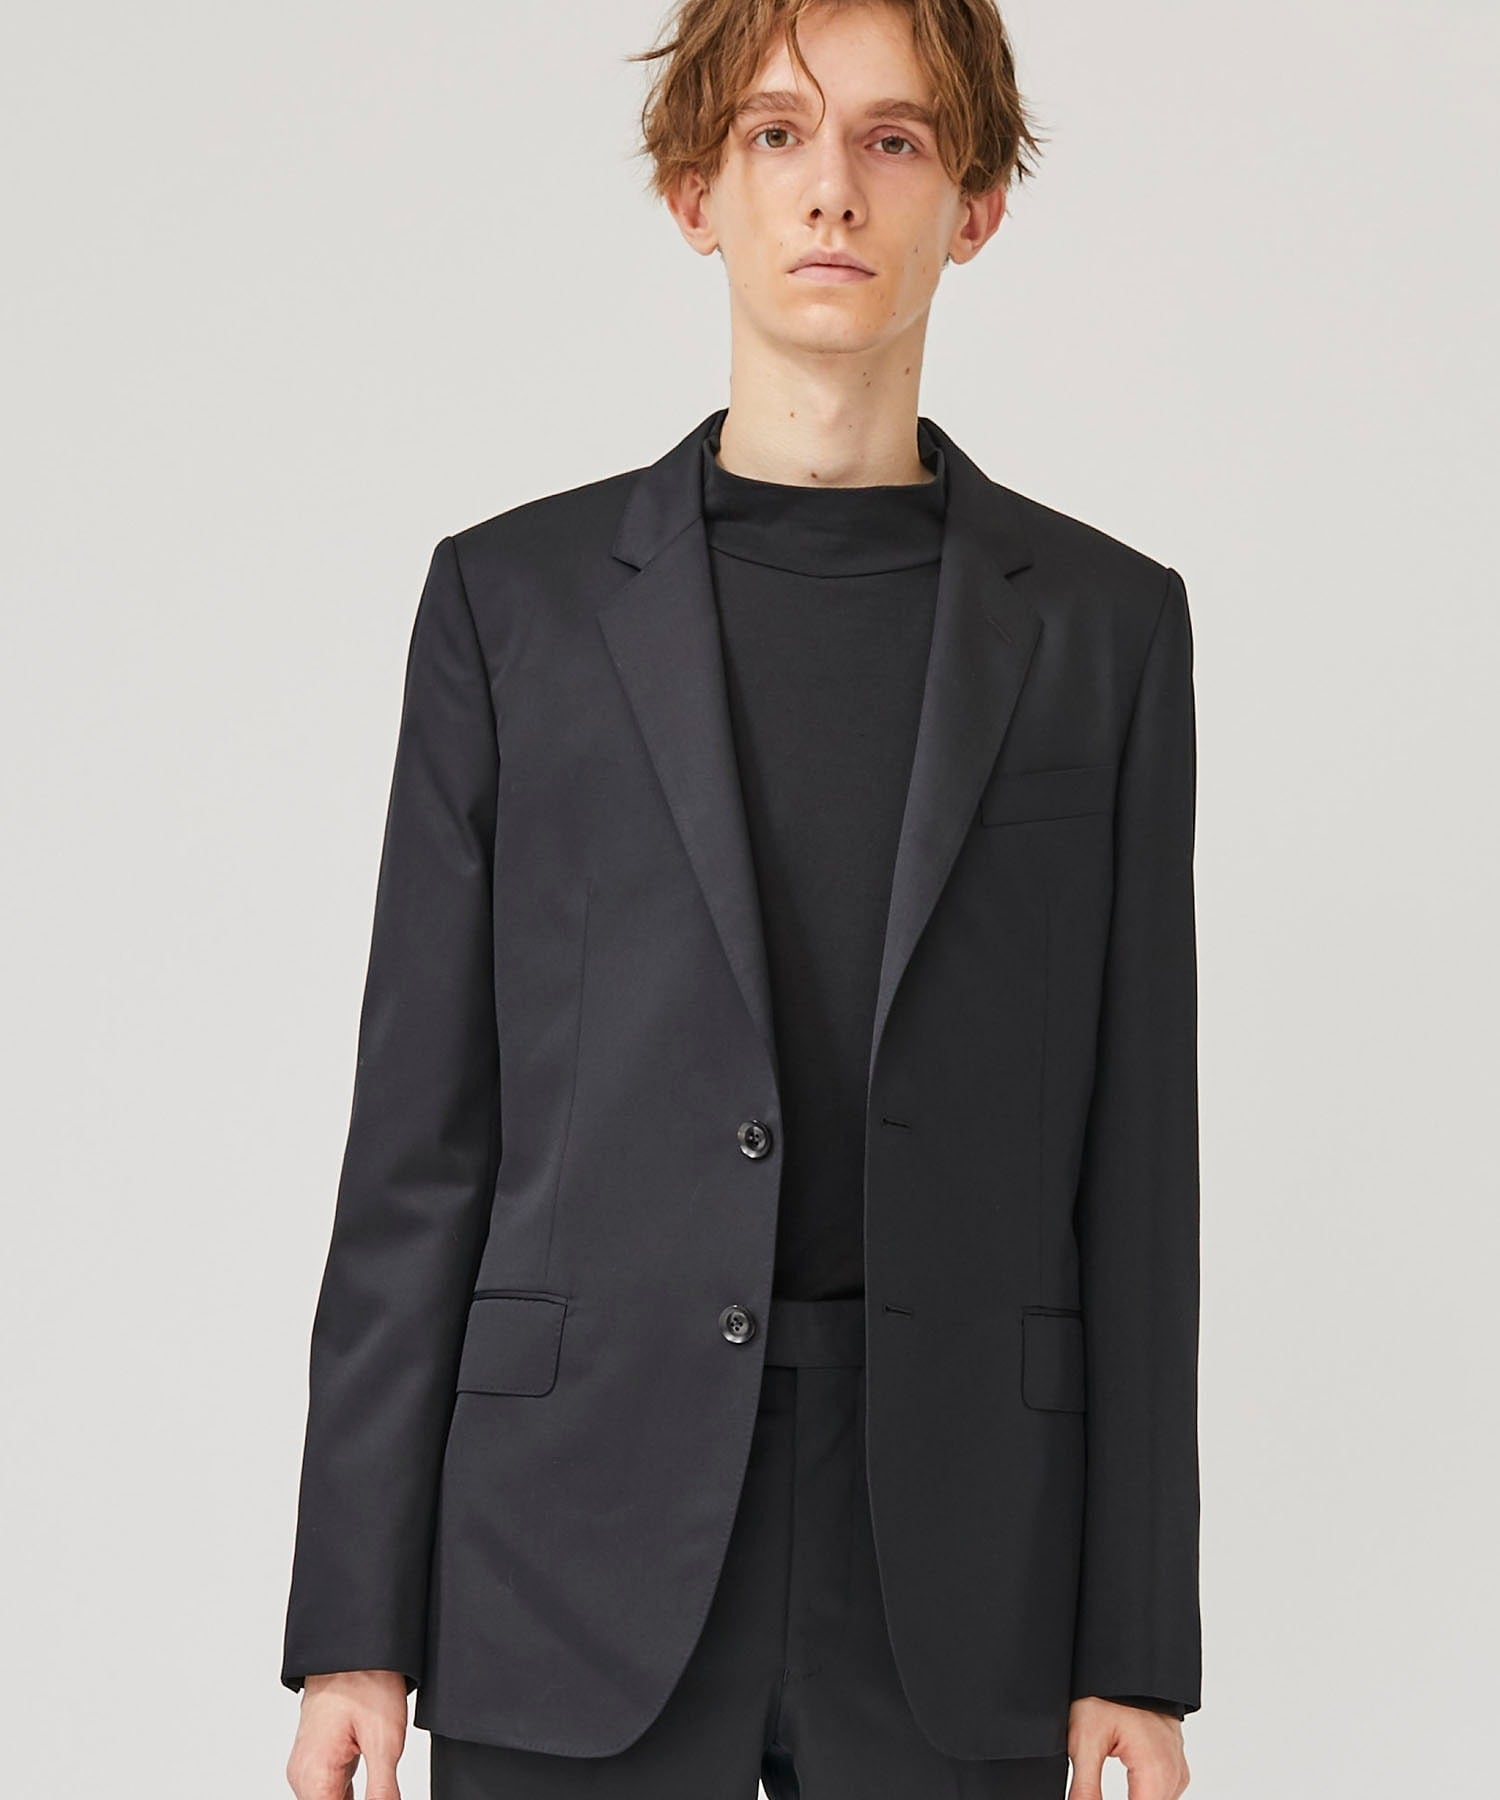 WOOL 2BUTTON JACKET JOHN LAWRENCE SULLIVAN